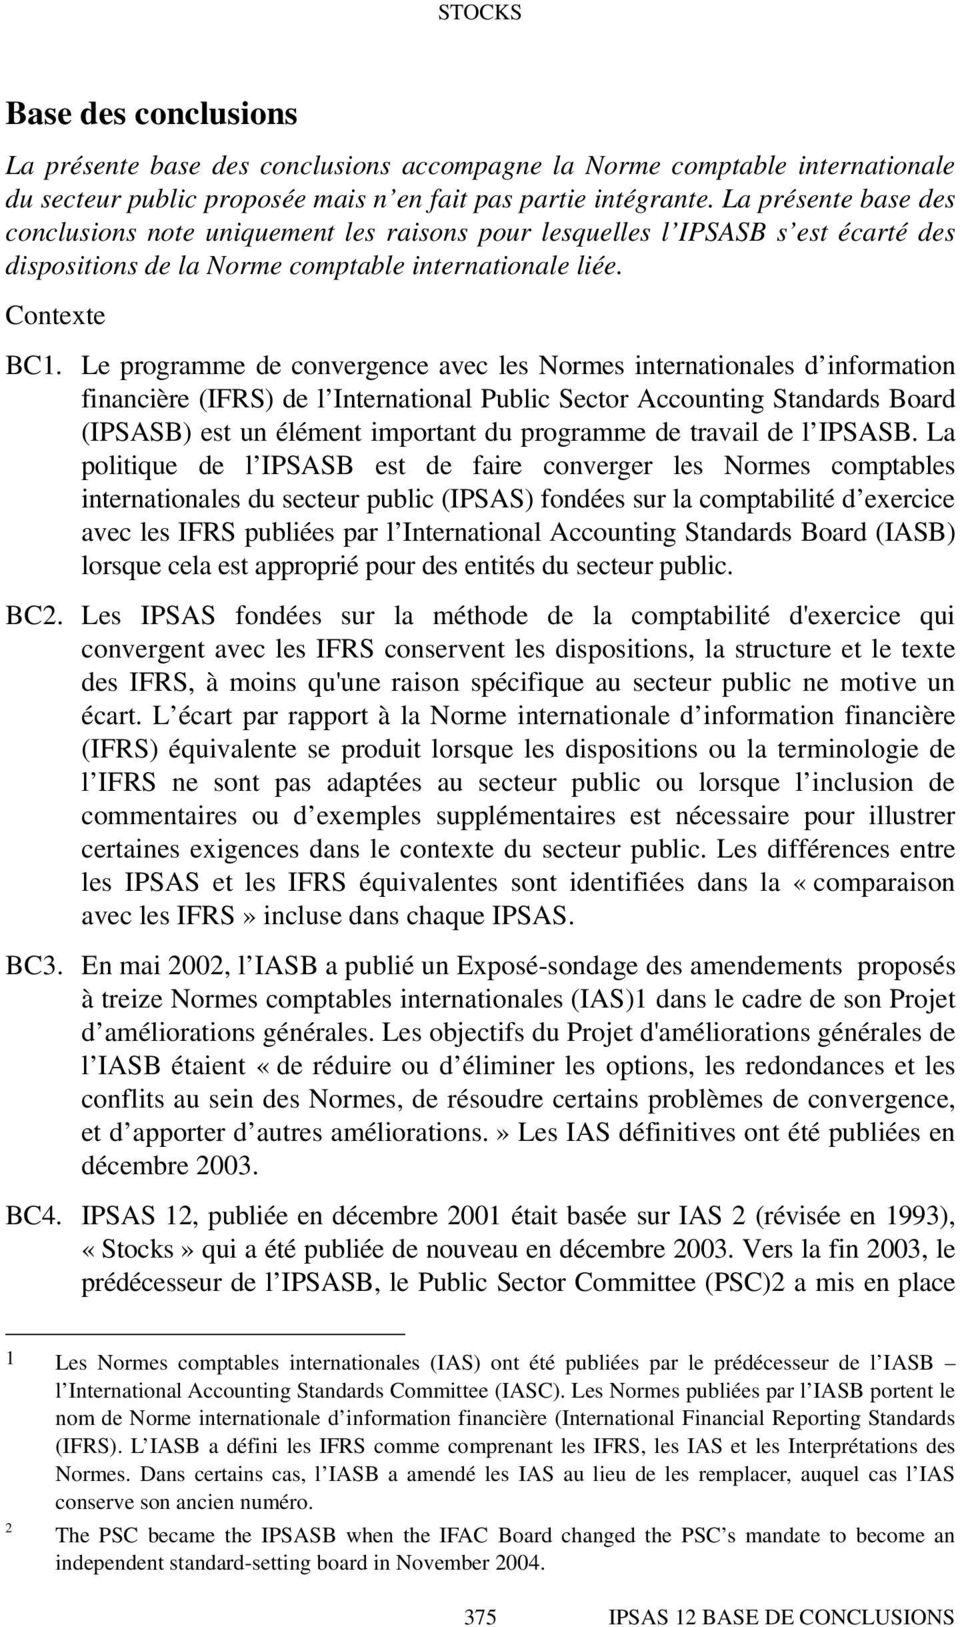 Le programme de convergence avec les Normes internationales d information financière (IFRS) de l International Public Sector Accounting Standards Board (IPSASB) est un élément important du programme